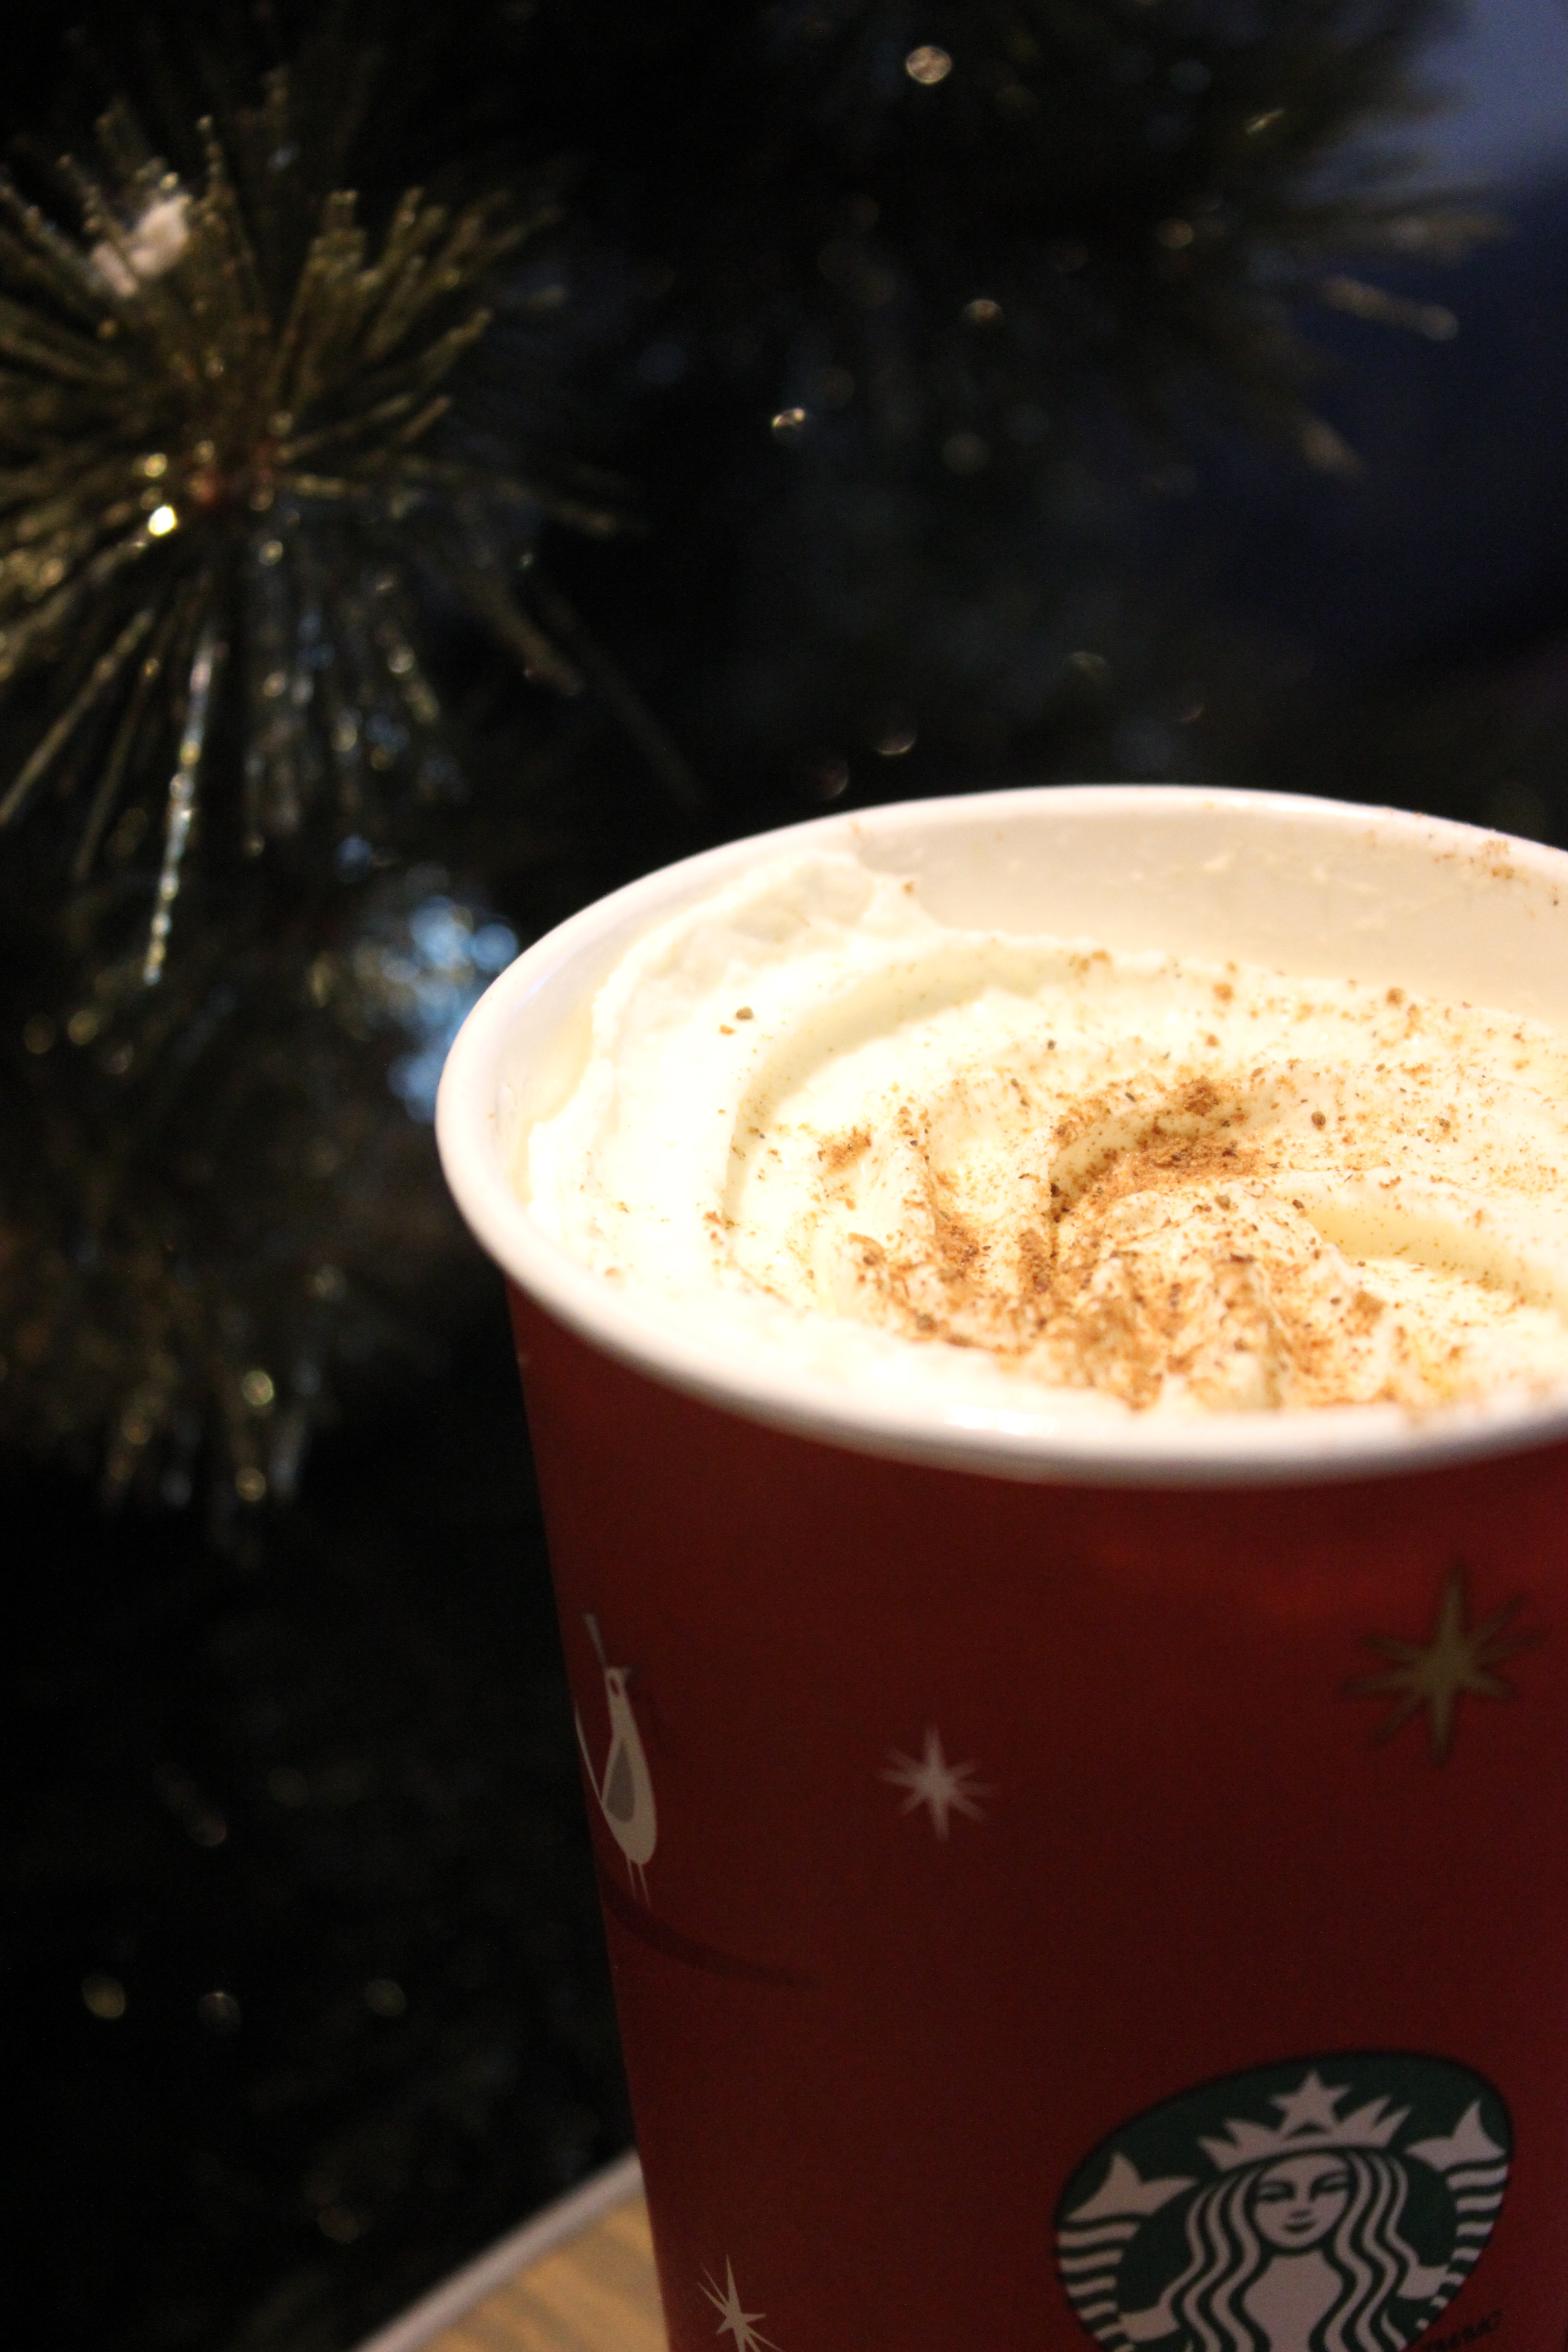 The Gingerbread Latte